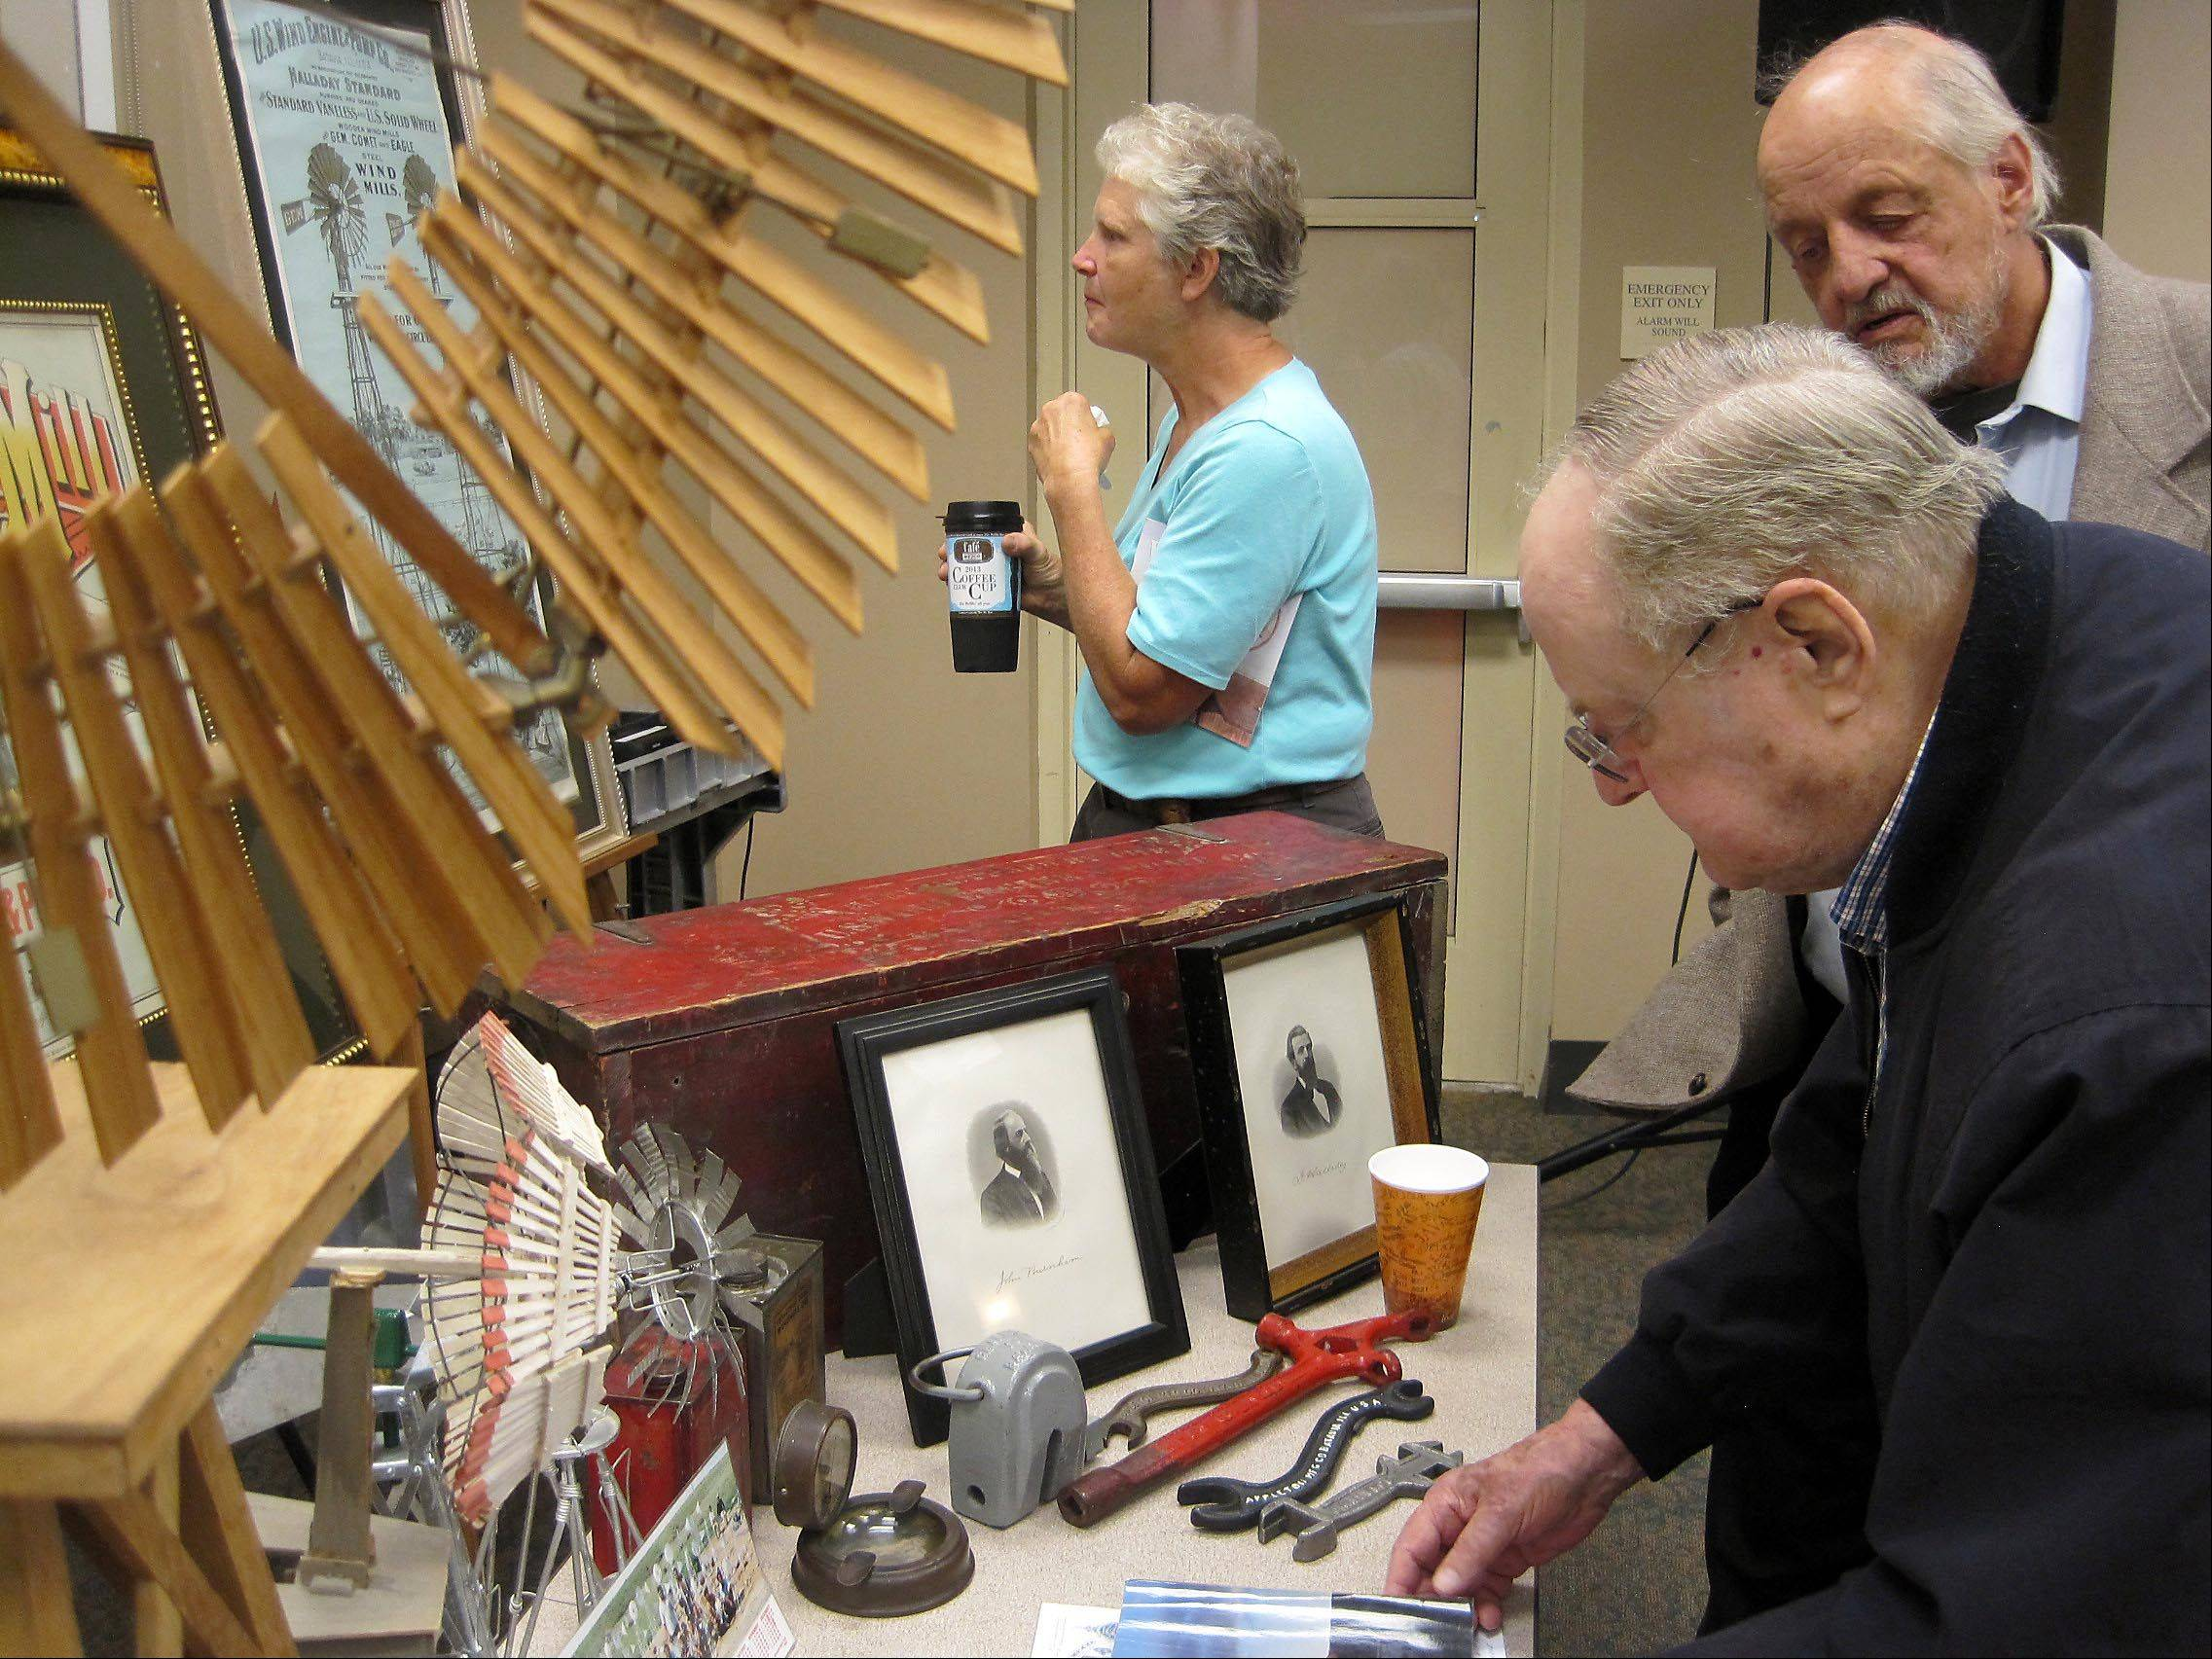 Hugh Cole of Wilmette, foreground, looks at a display of historic windmill artifacts on Saturday at the Batavia Public Library. Next to him is Dick Riseling, a Batavia native who now lives in New York. Both men attended a ceremony that designated Batavia's windmill collection as an engineering landmark by the American Society of Mechanical Engineers.